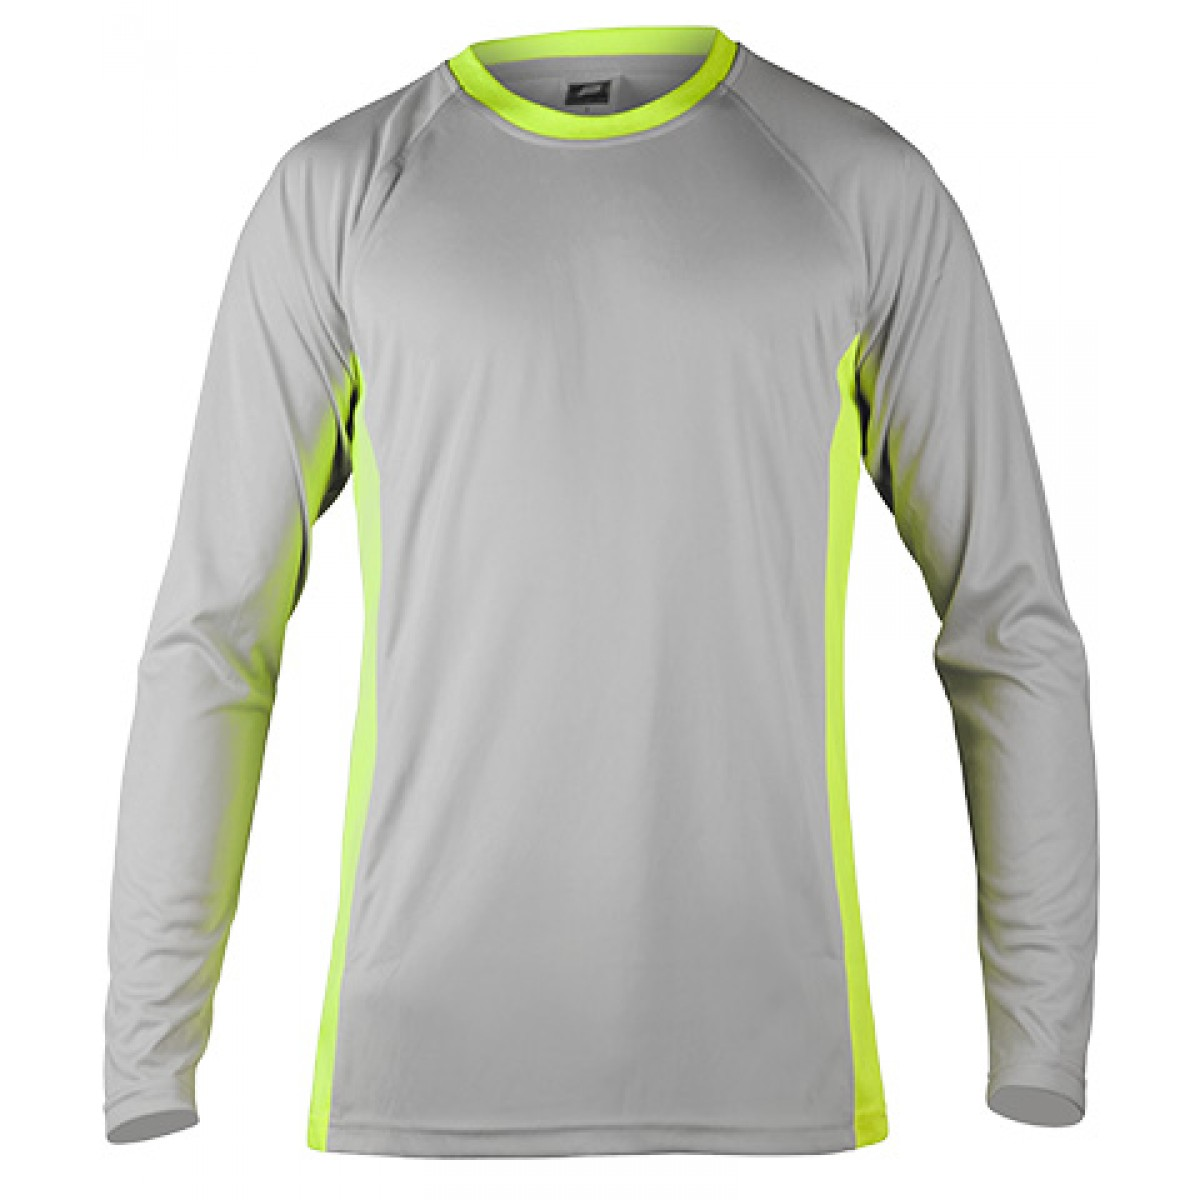 Long Sleeves Performance With Side Insert-Gray/Green-M